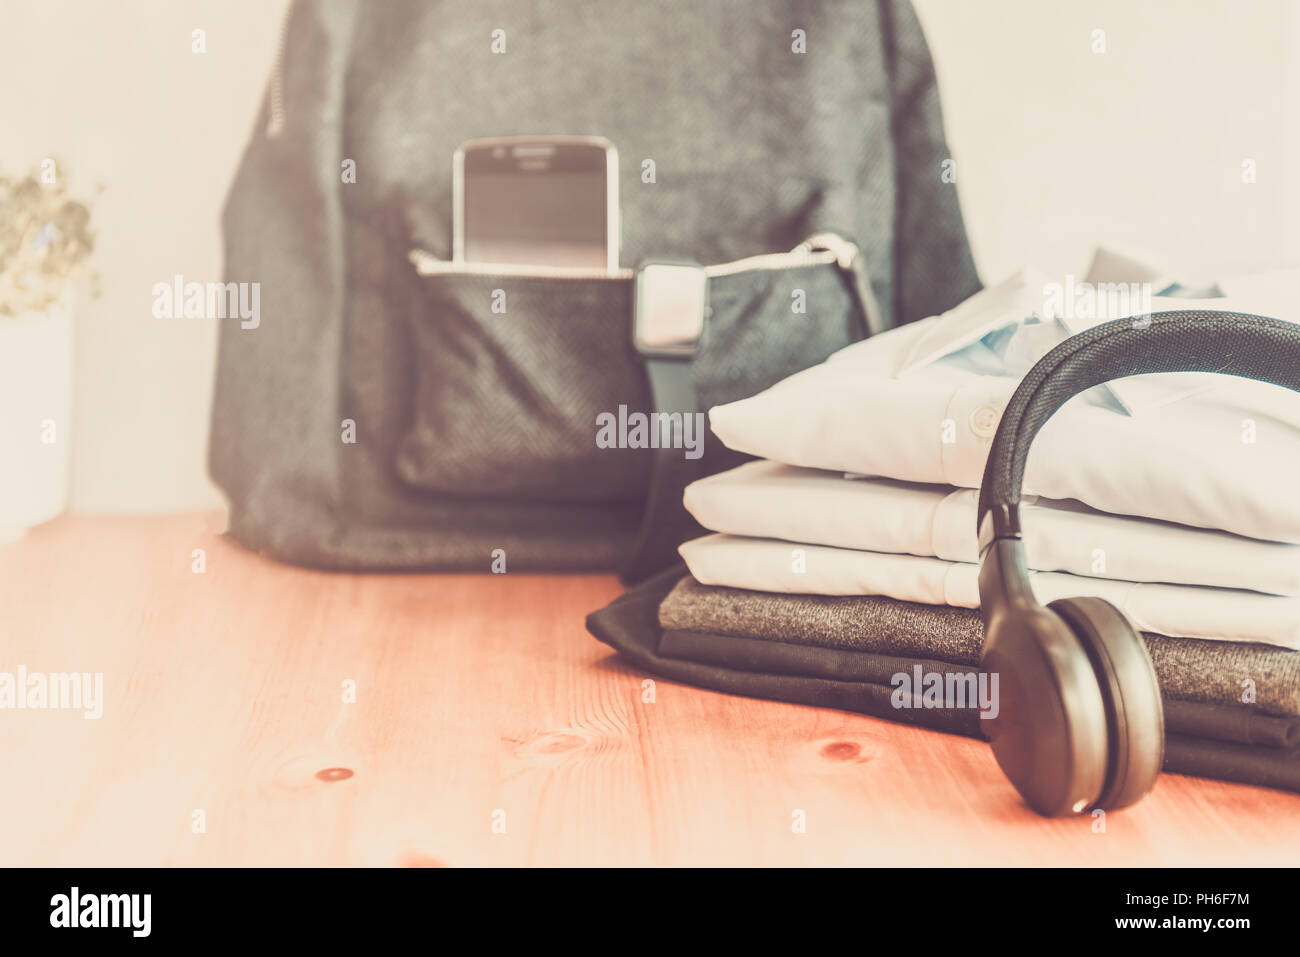 Back to school concept, backpack with school uniform such as white shirts and sweater, as well as electronic devices such as smart watch, mobile phone Stock Photo